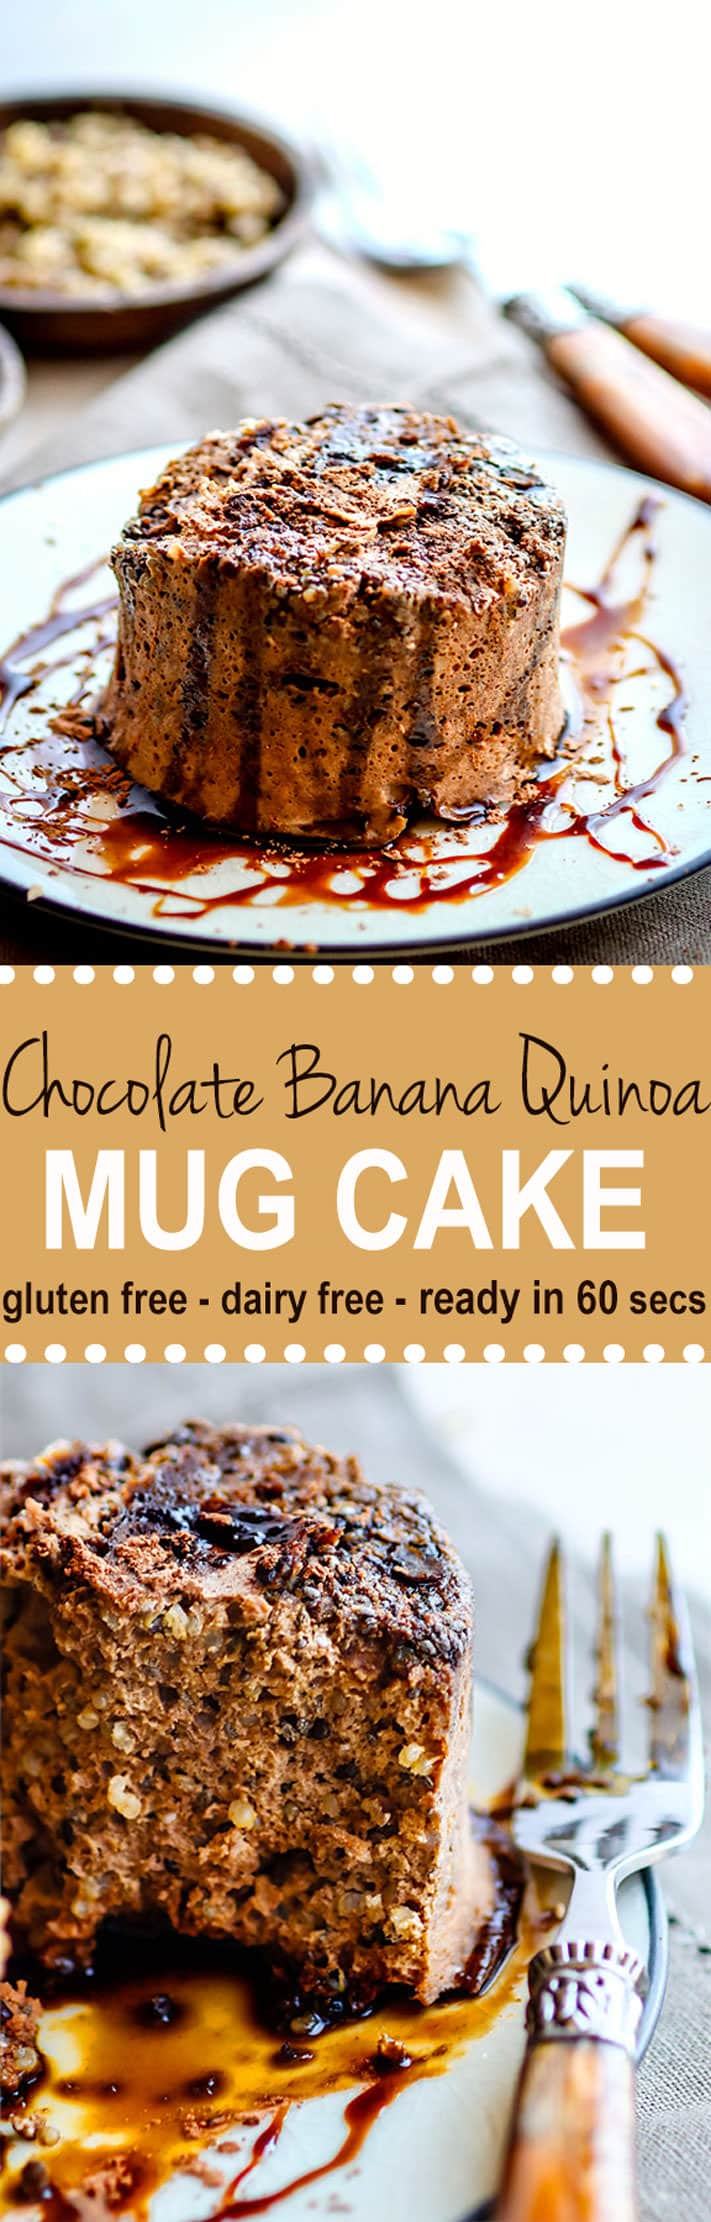 Super Simple Chocolate Banana Quinoa Microwave Mug Cake! A delicious gluten Free and dairy Free effortless One Minute Mug Cake that will leave you feeling nourished and energized! A great snack, breakfast, or dessert! Made with real food, real fast.